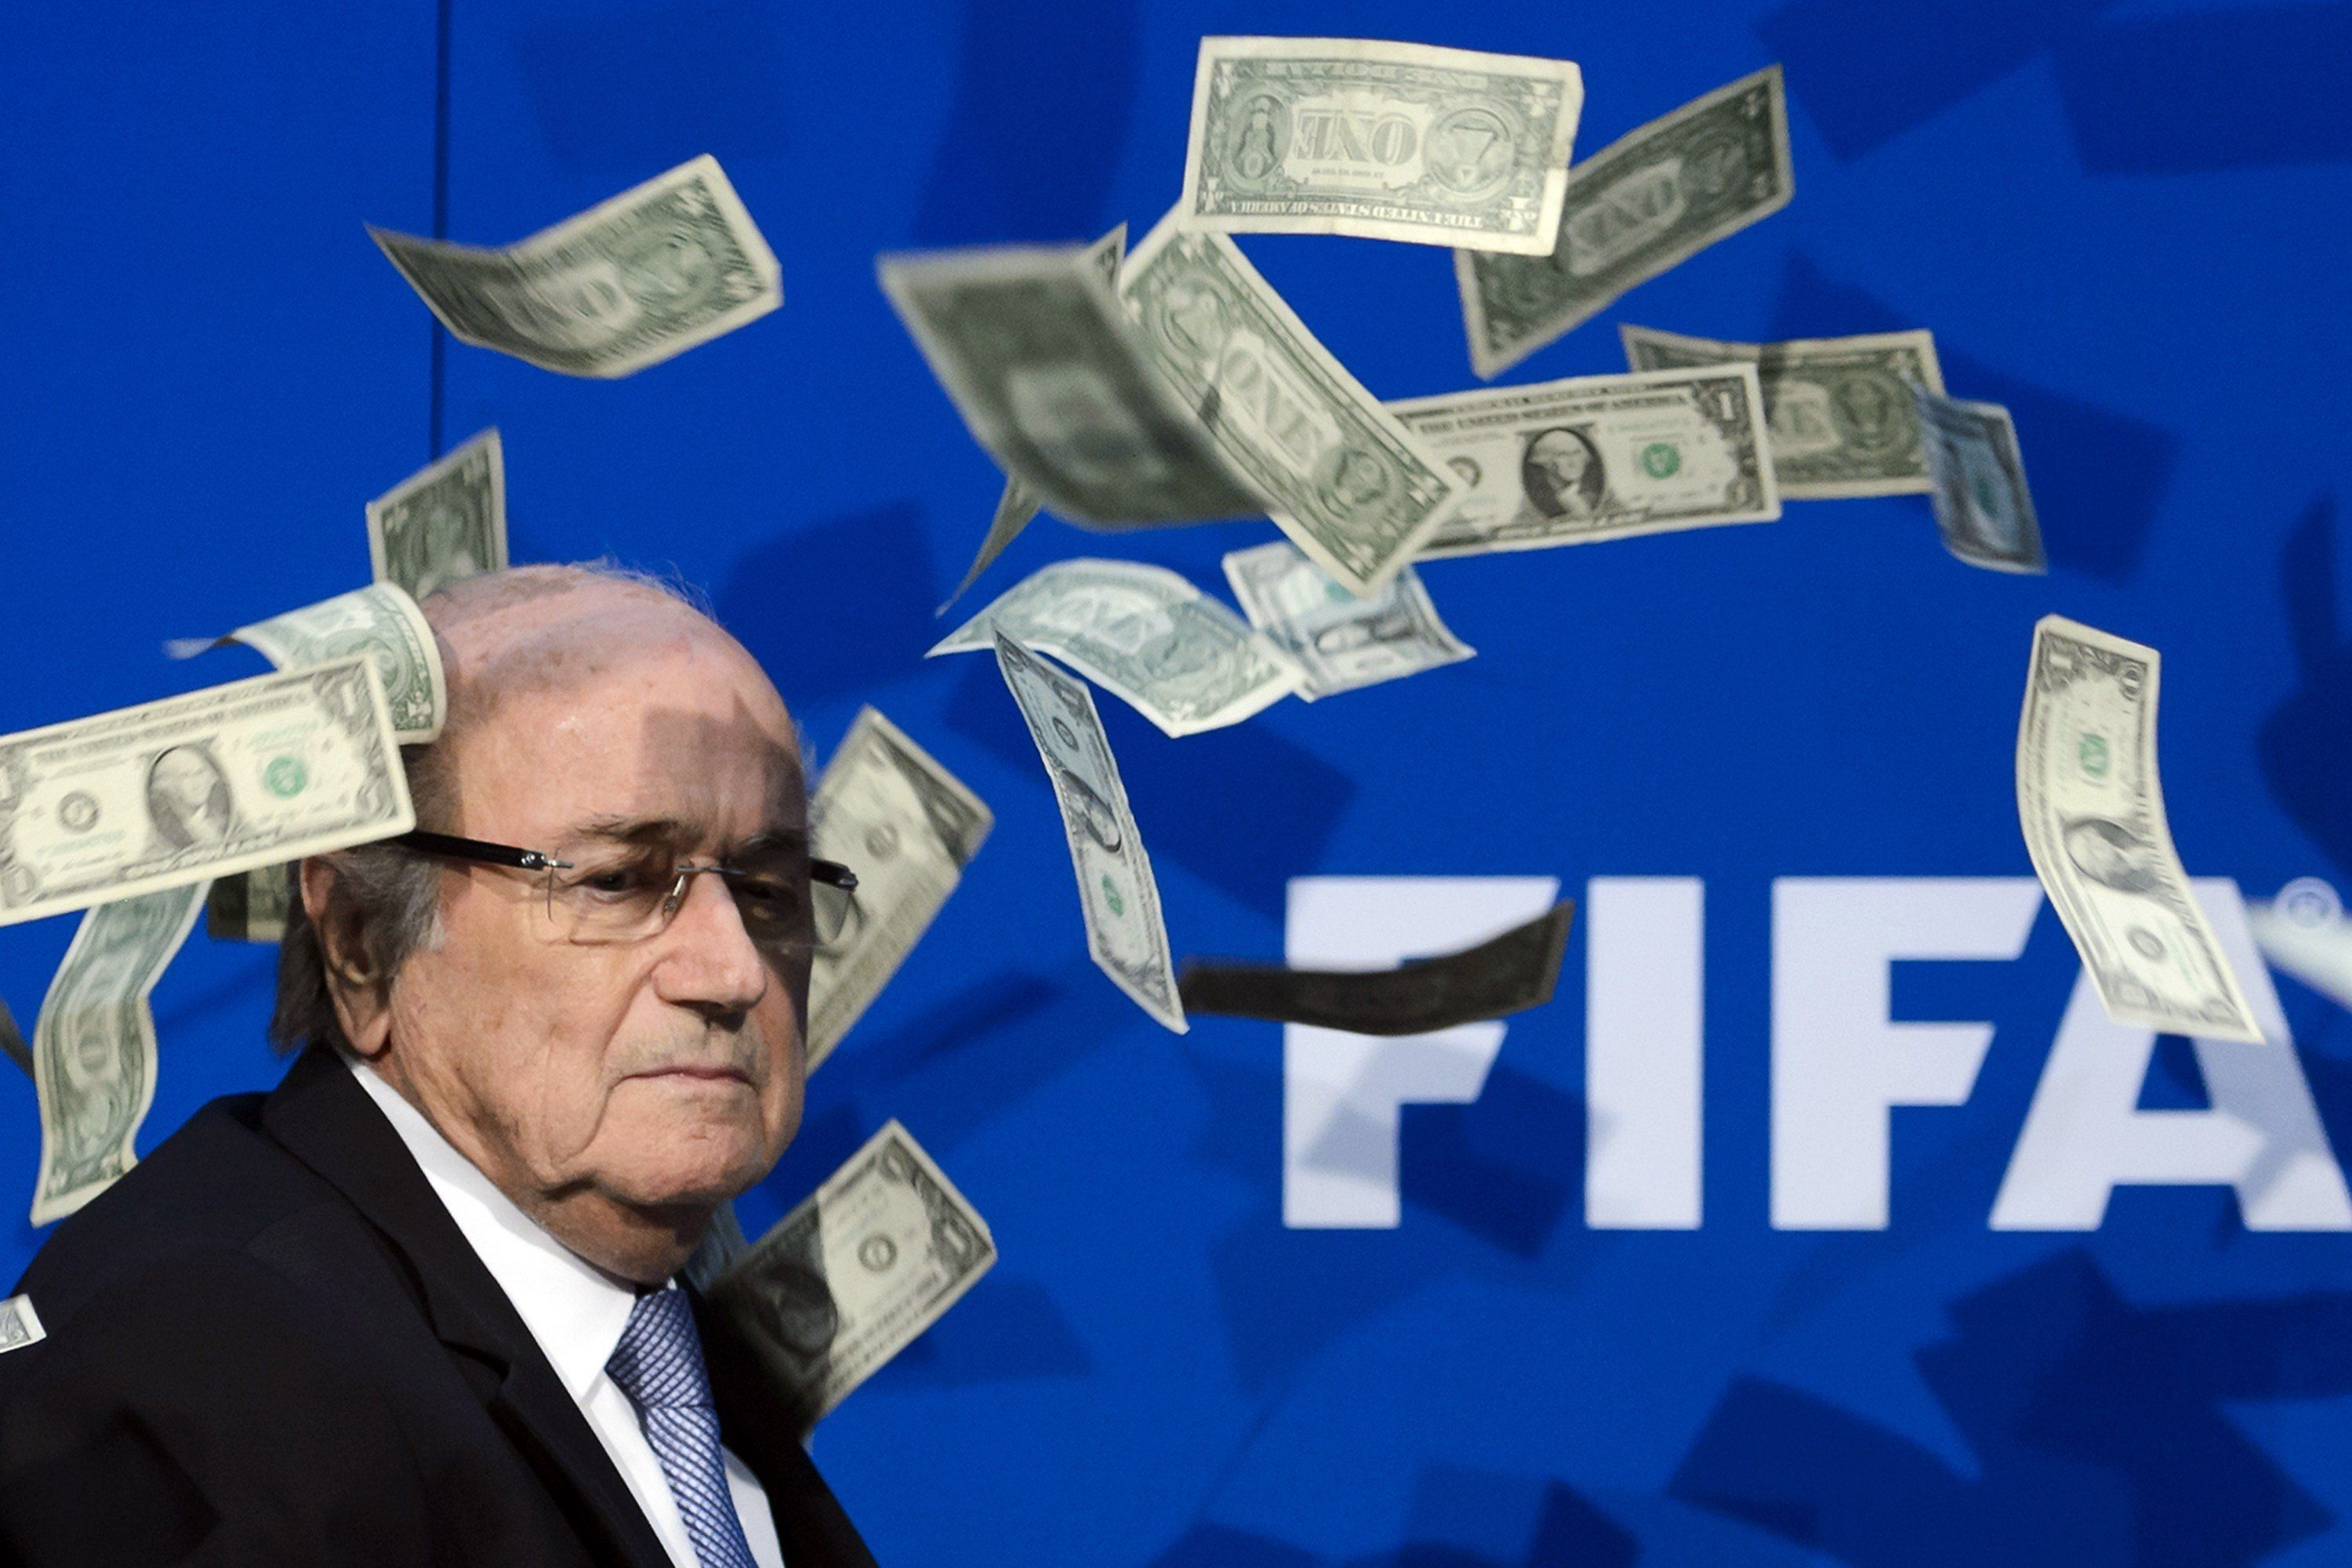 FIFA president Sepp Blatter looks on with fake dollars note flying around him thrown by a protester during a press conference at the football's world body headquarter's on July 20, 2015 in Zurich. FIFA said today that a special election will be held on February 26 to replace president Sepp Blatter.   AFP PHOTO / FABRICE COFFRINI / AFP / FABRICE COFFRINI        (Photo credit should read FABRICE COFFRINI/AFP/Getty Images)